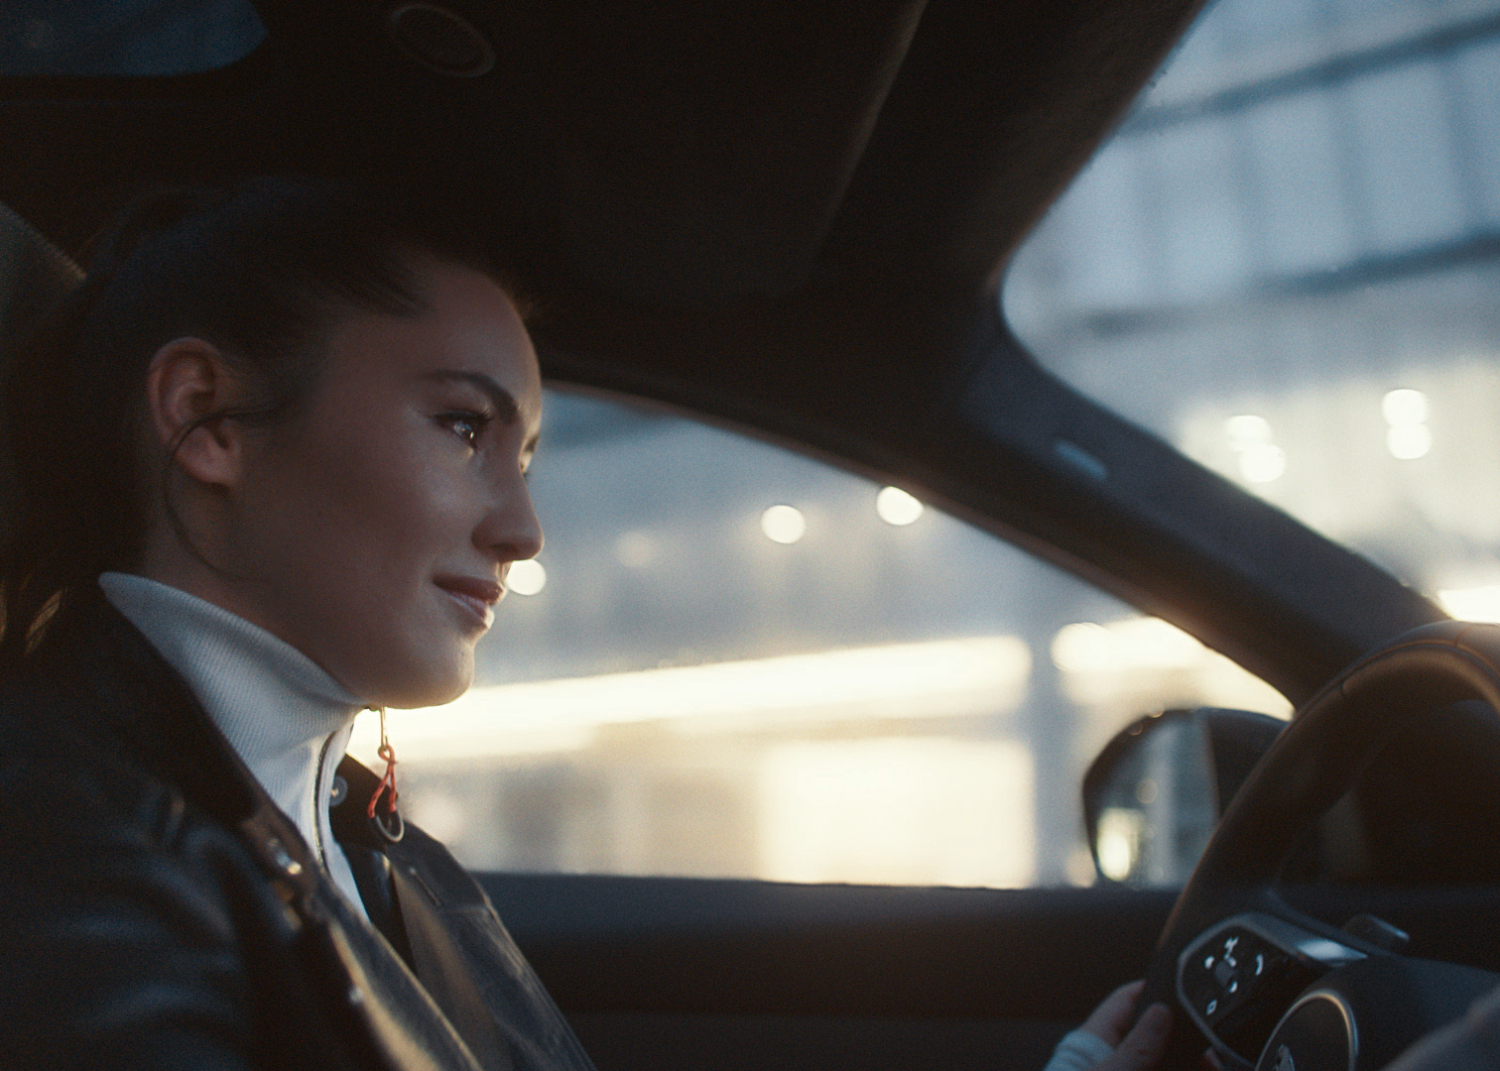 Jaguar Celebrates Fearless Creativity with New E-pace Campaign - Image 1